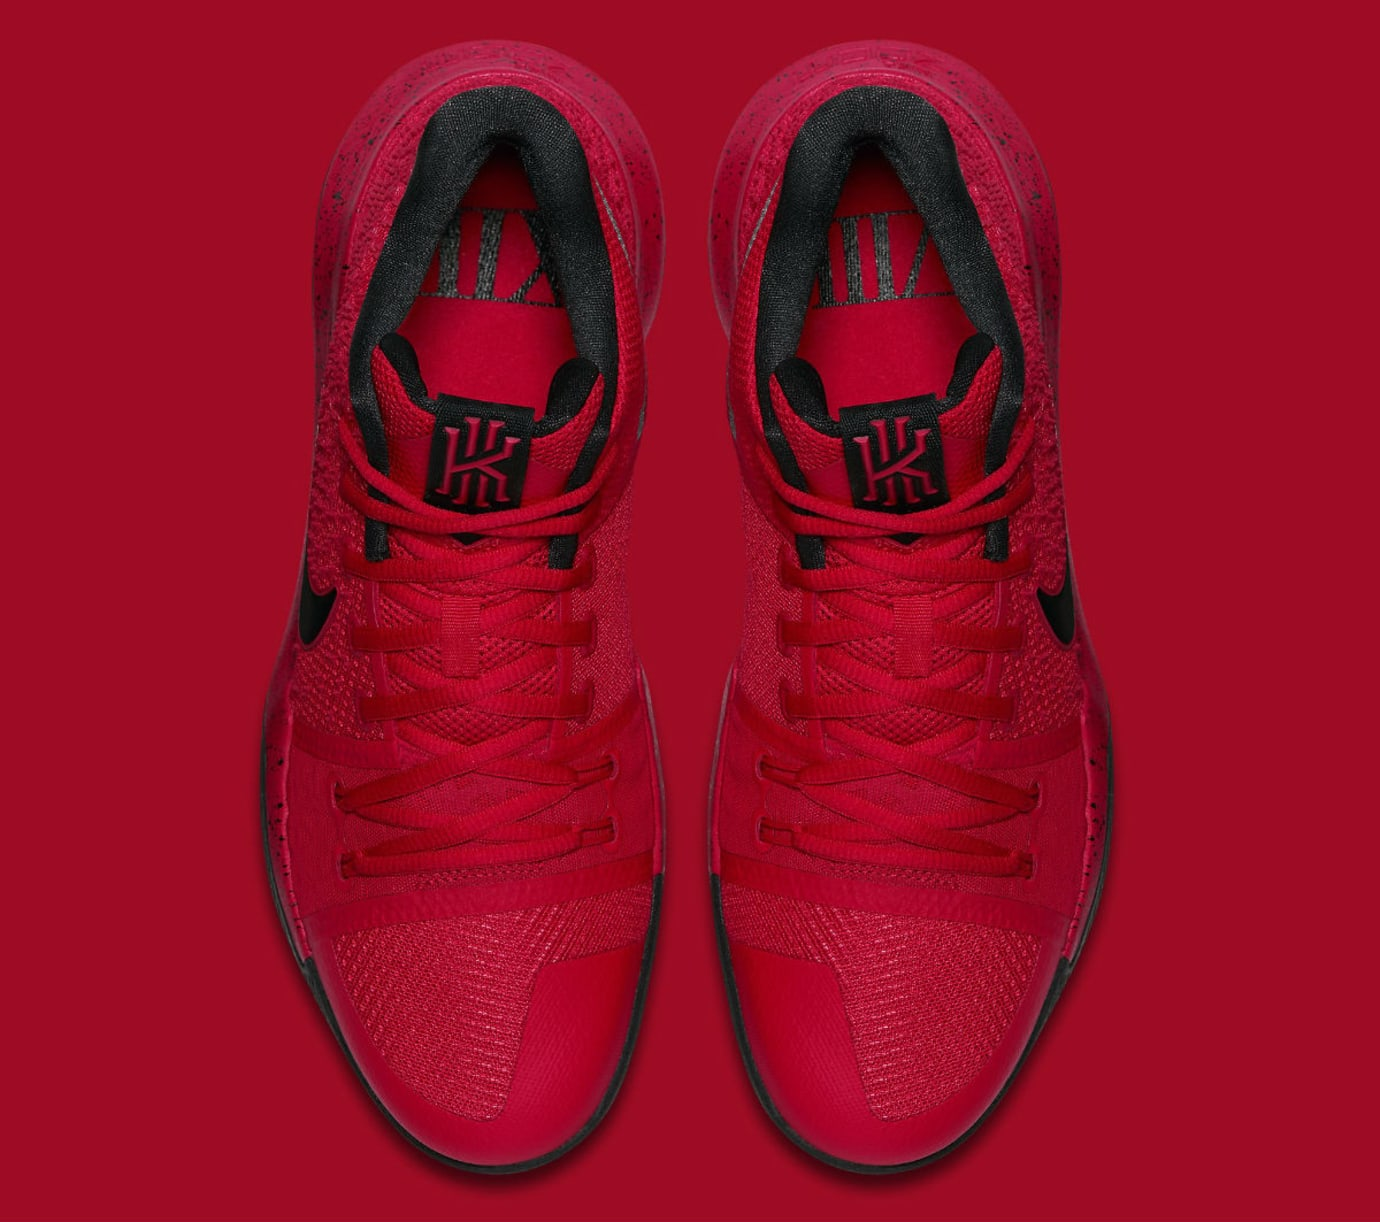 Nike Kyrie 3 Three-Point Contest University Red Release Date Top 852395-600